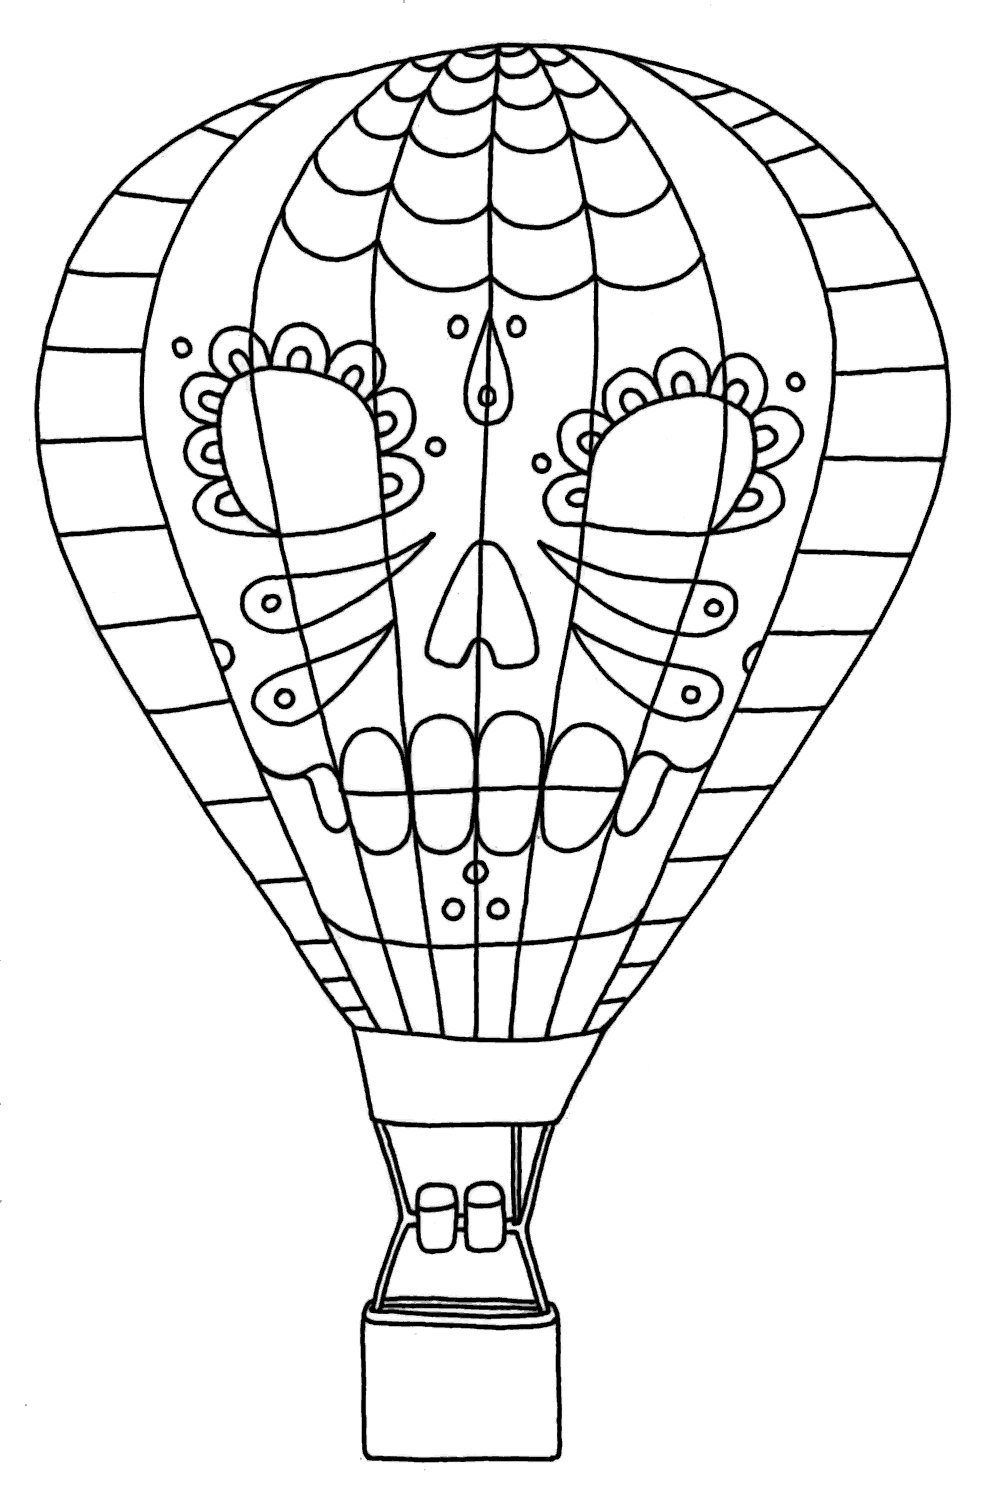 Hot Air Balloon Coloring Pages With Sugar Skull Images